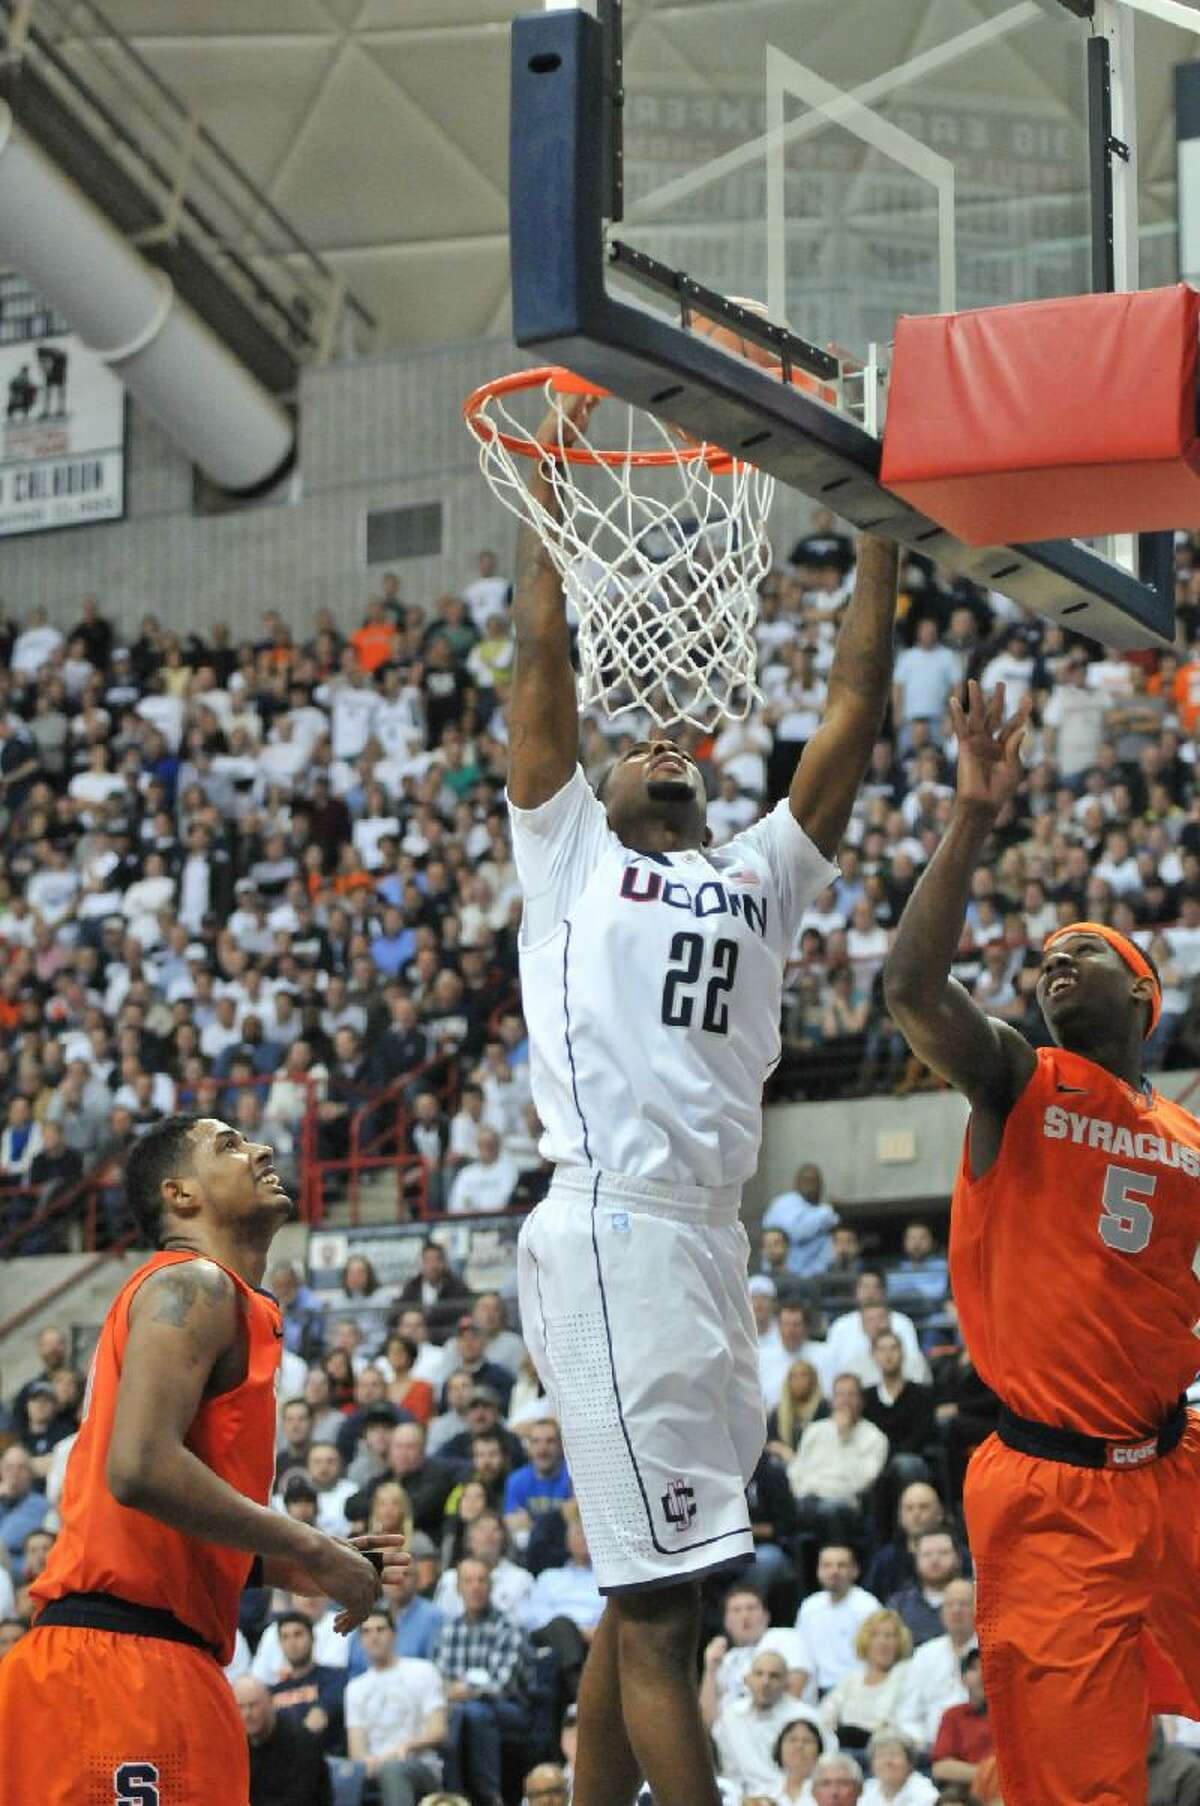 ASSOCIATED PRESS Connecticut forward Roscoe Smith gets fouled by Syracuse forward C.J. Fair in the first half of Saturday's game at Gampel Pavilion in Storrs.